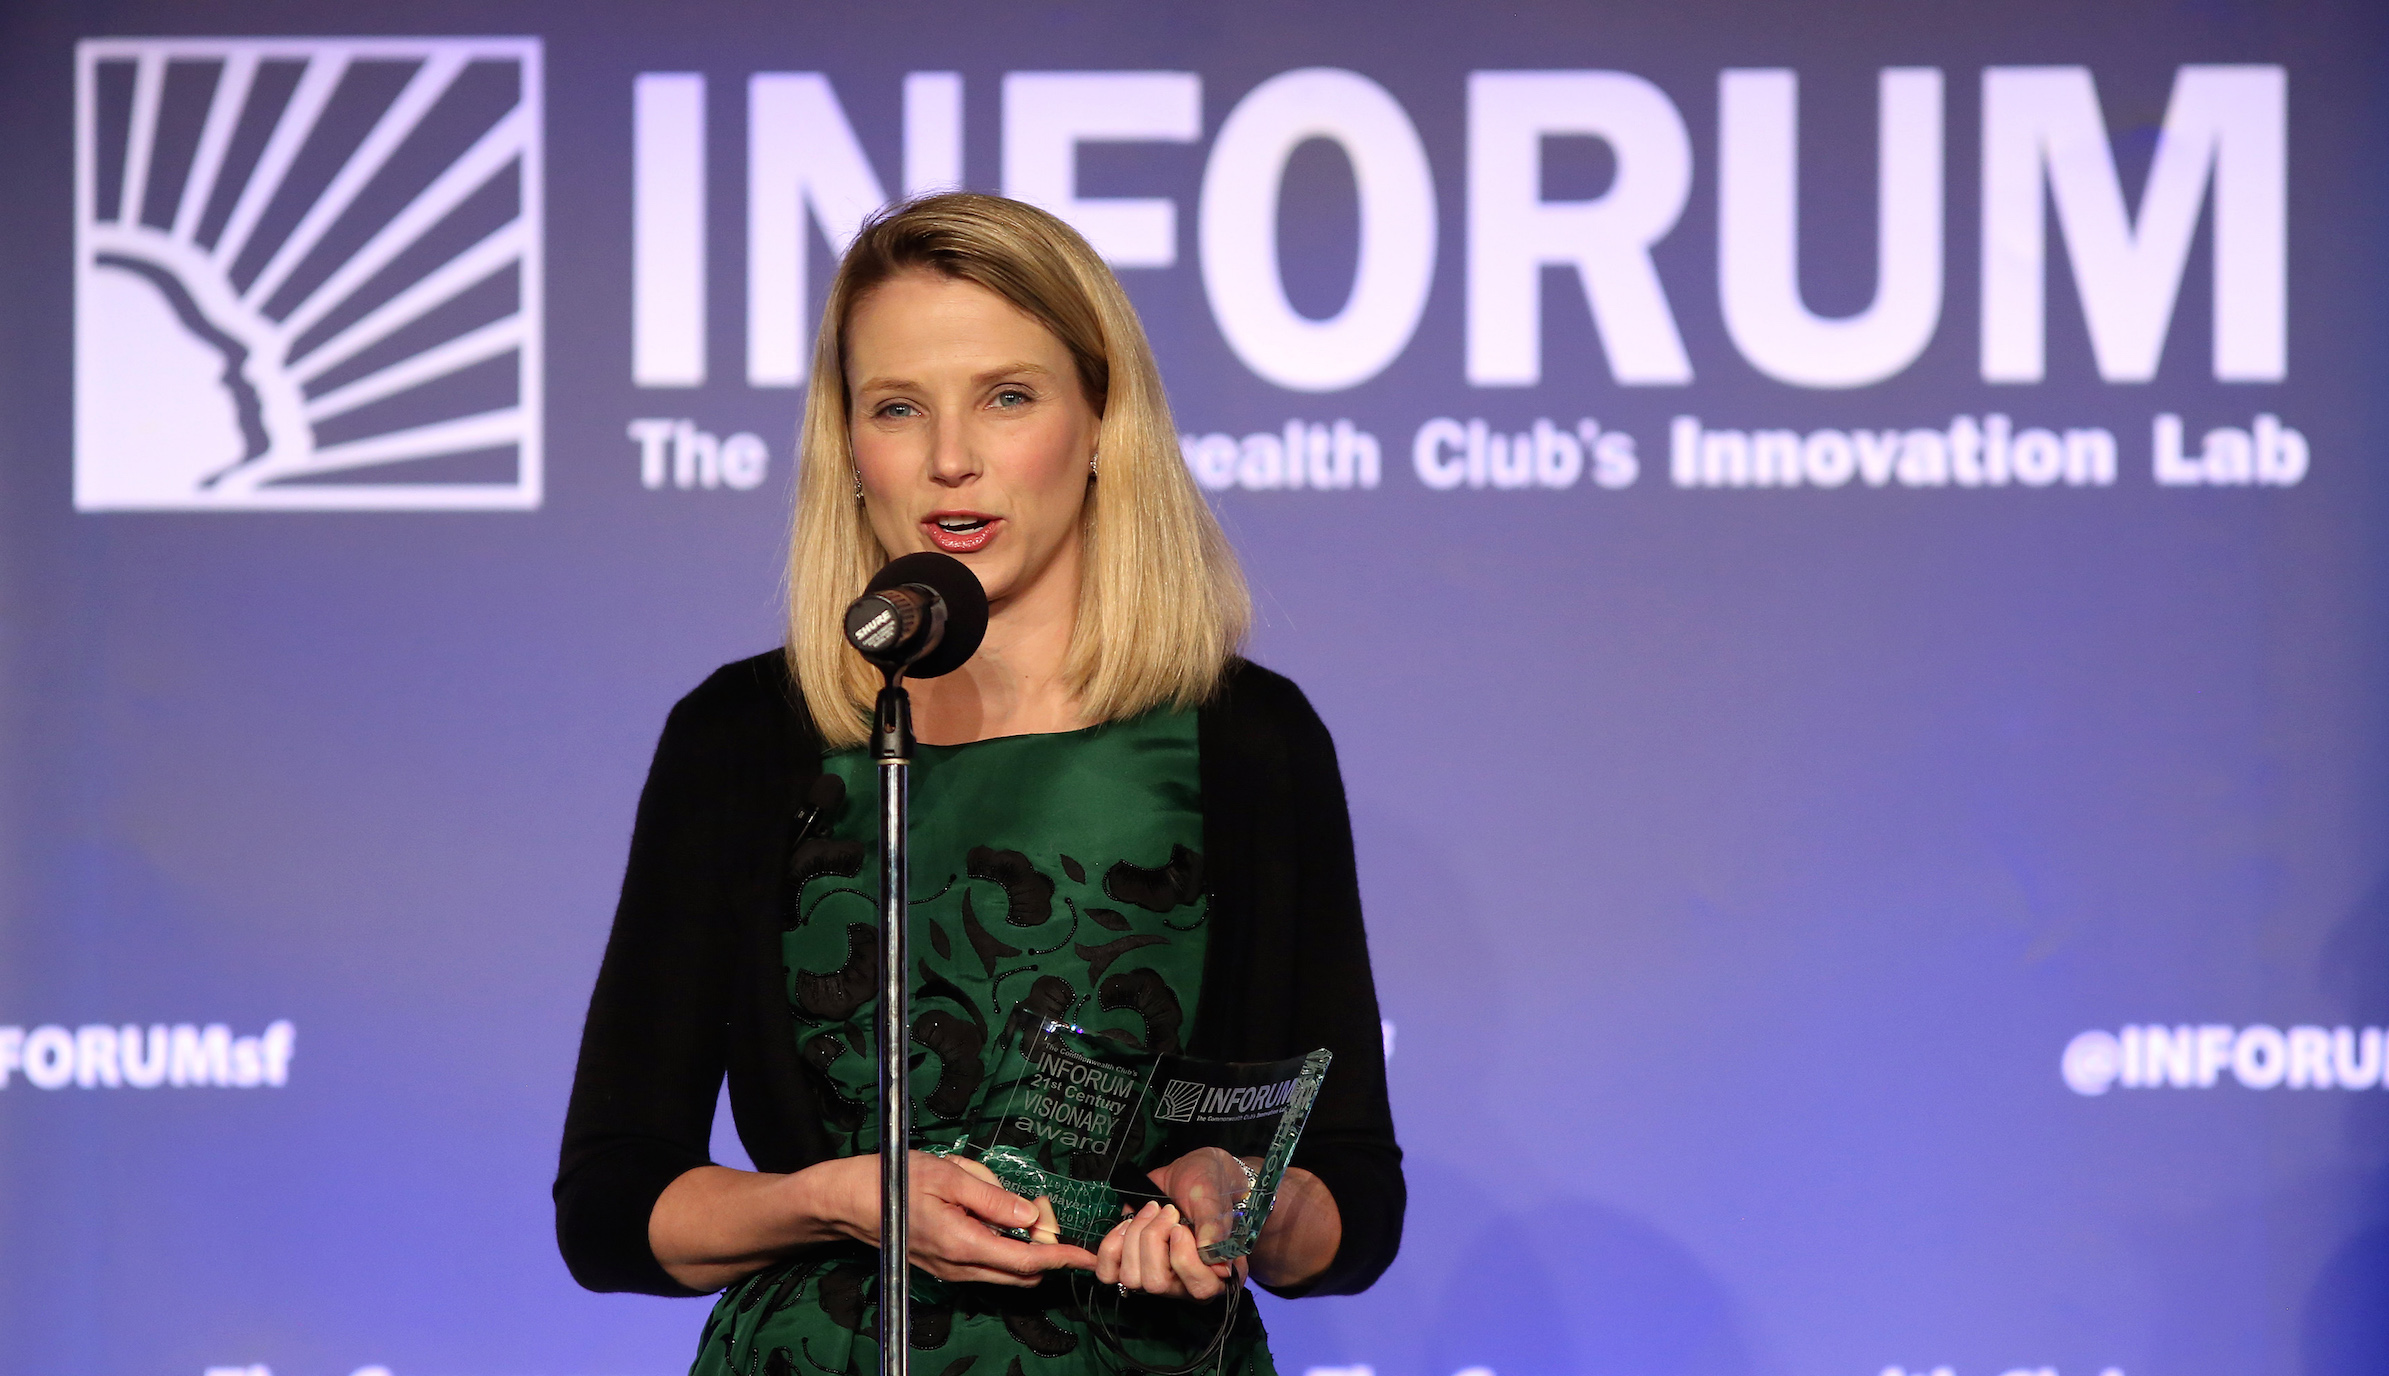 Yahoo CEO Marissa Mayer speaks at a Salesforce event at the Commonwealth Club in San Francisco, California October 30, 2014. REUTERS/Robert Galbraith  (UNITED STATES - Tags: BUSINESS) - RTR4C9L9